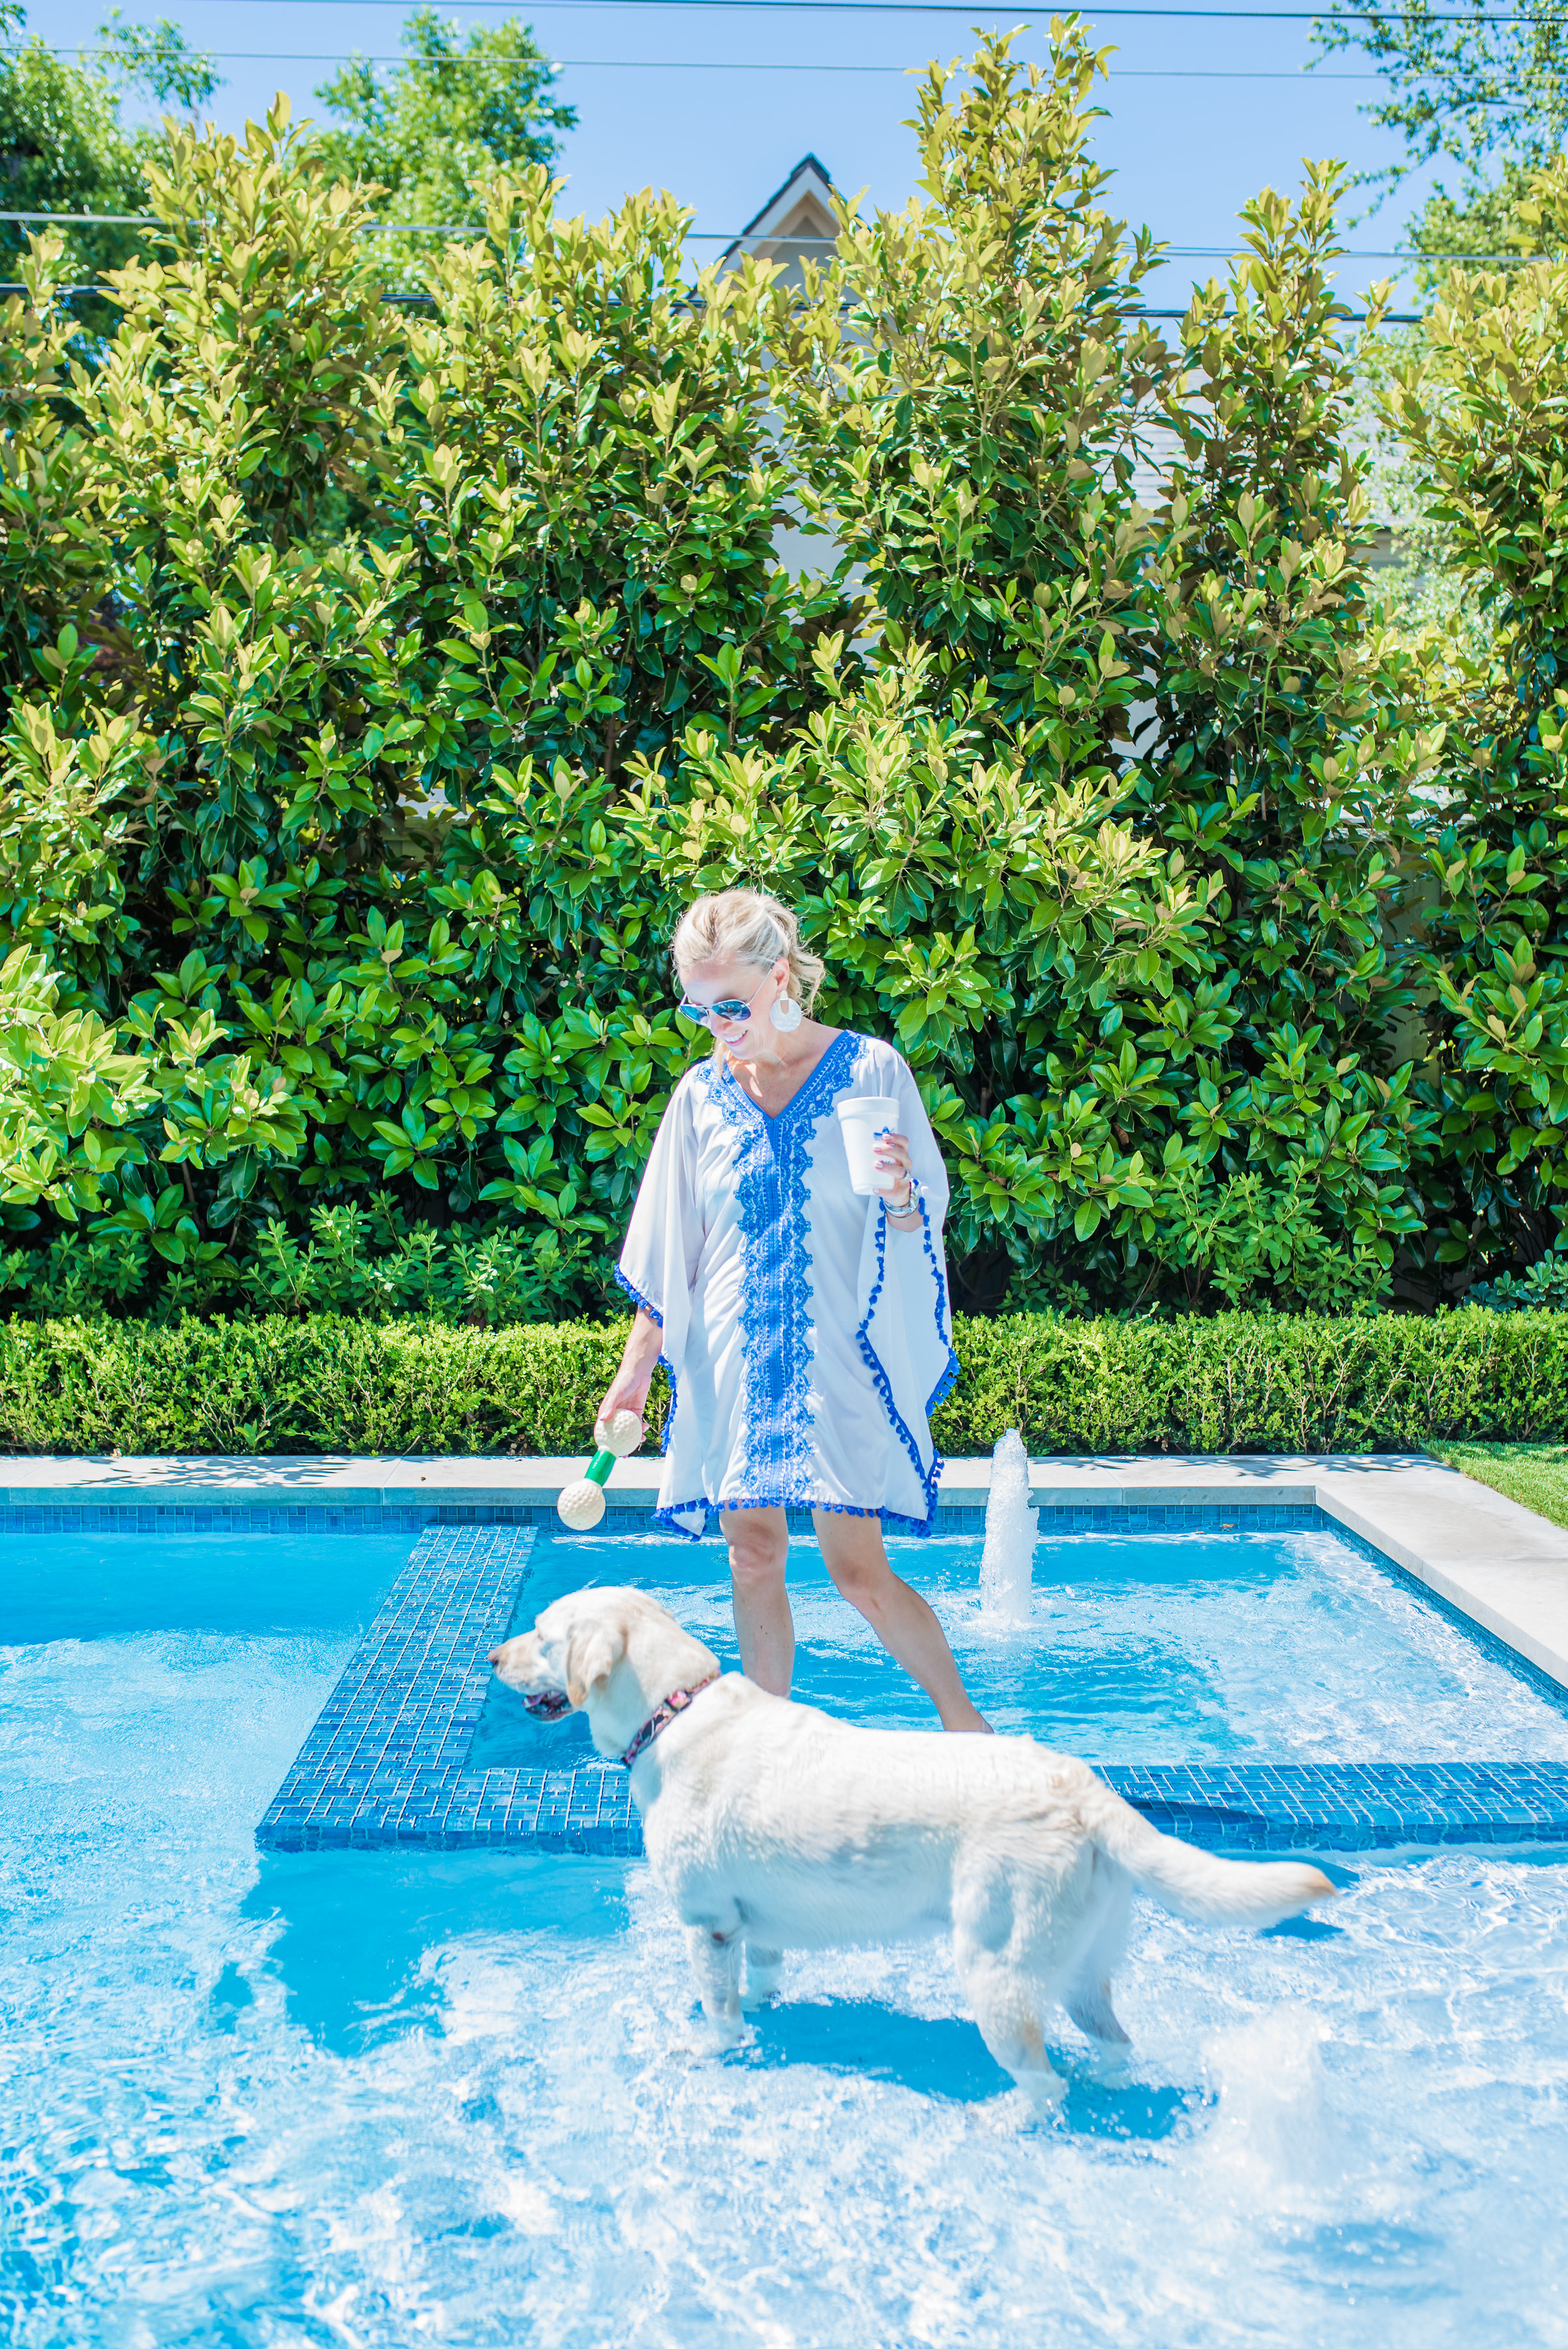 Alicia Wood, Dallas Lifestyle Blogger, Dallas Fashion Blogger, Cabana Life Cover Up, Playing Fetch with a Yellow Lab